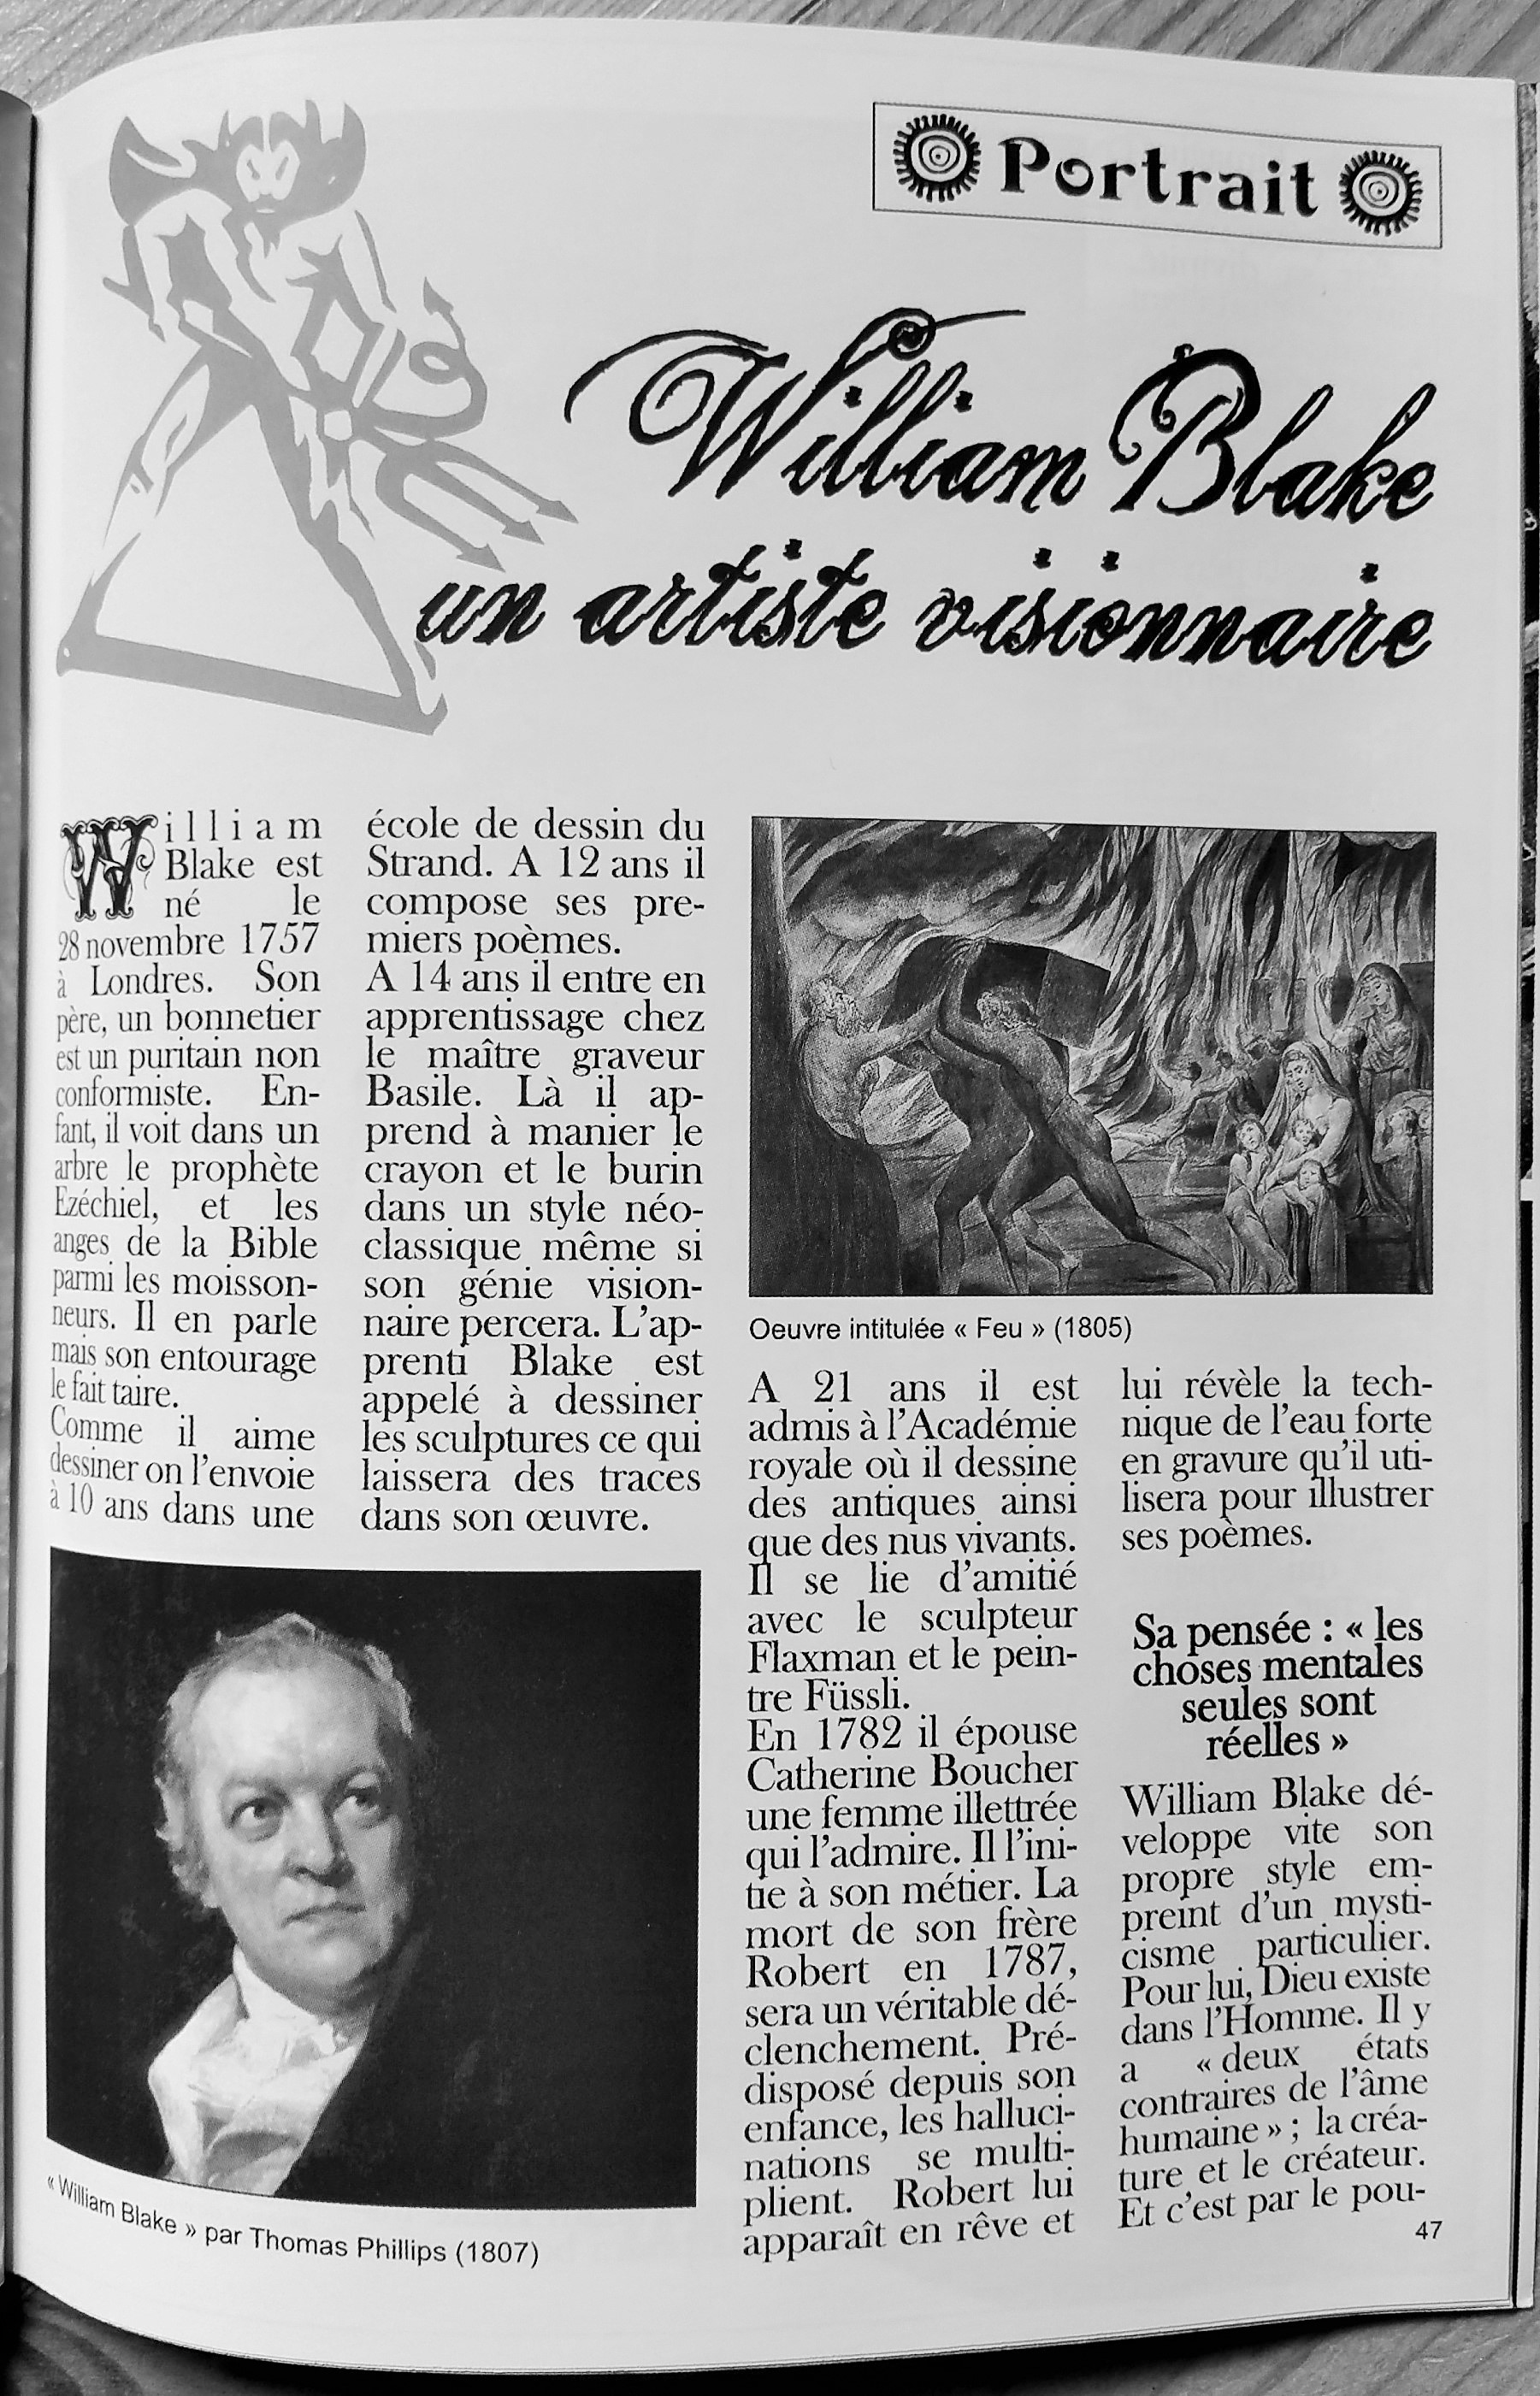 William Blake, un artiste visionnaire